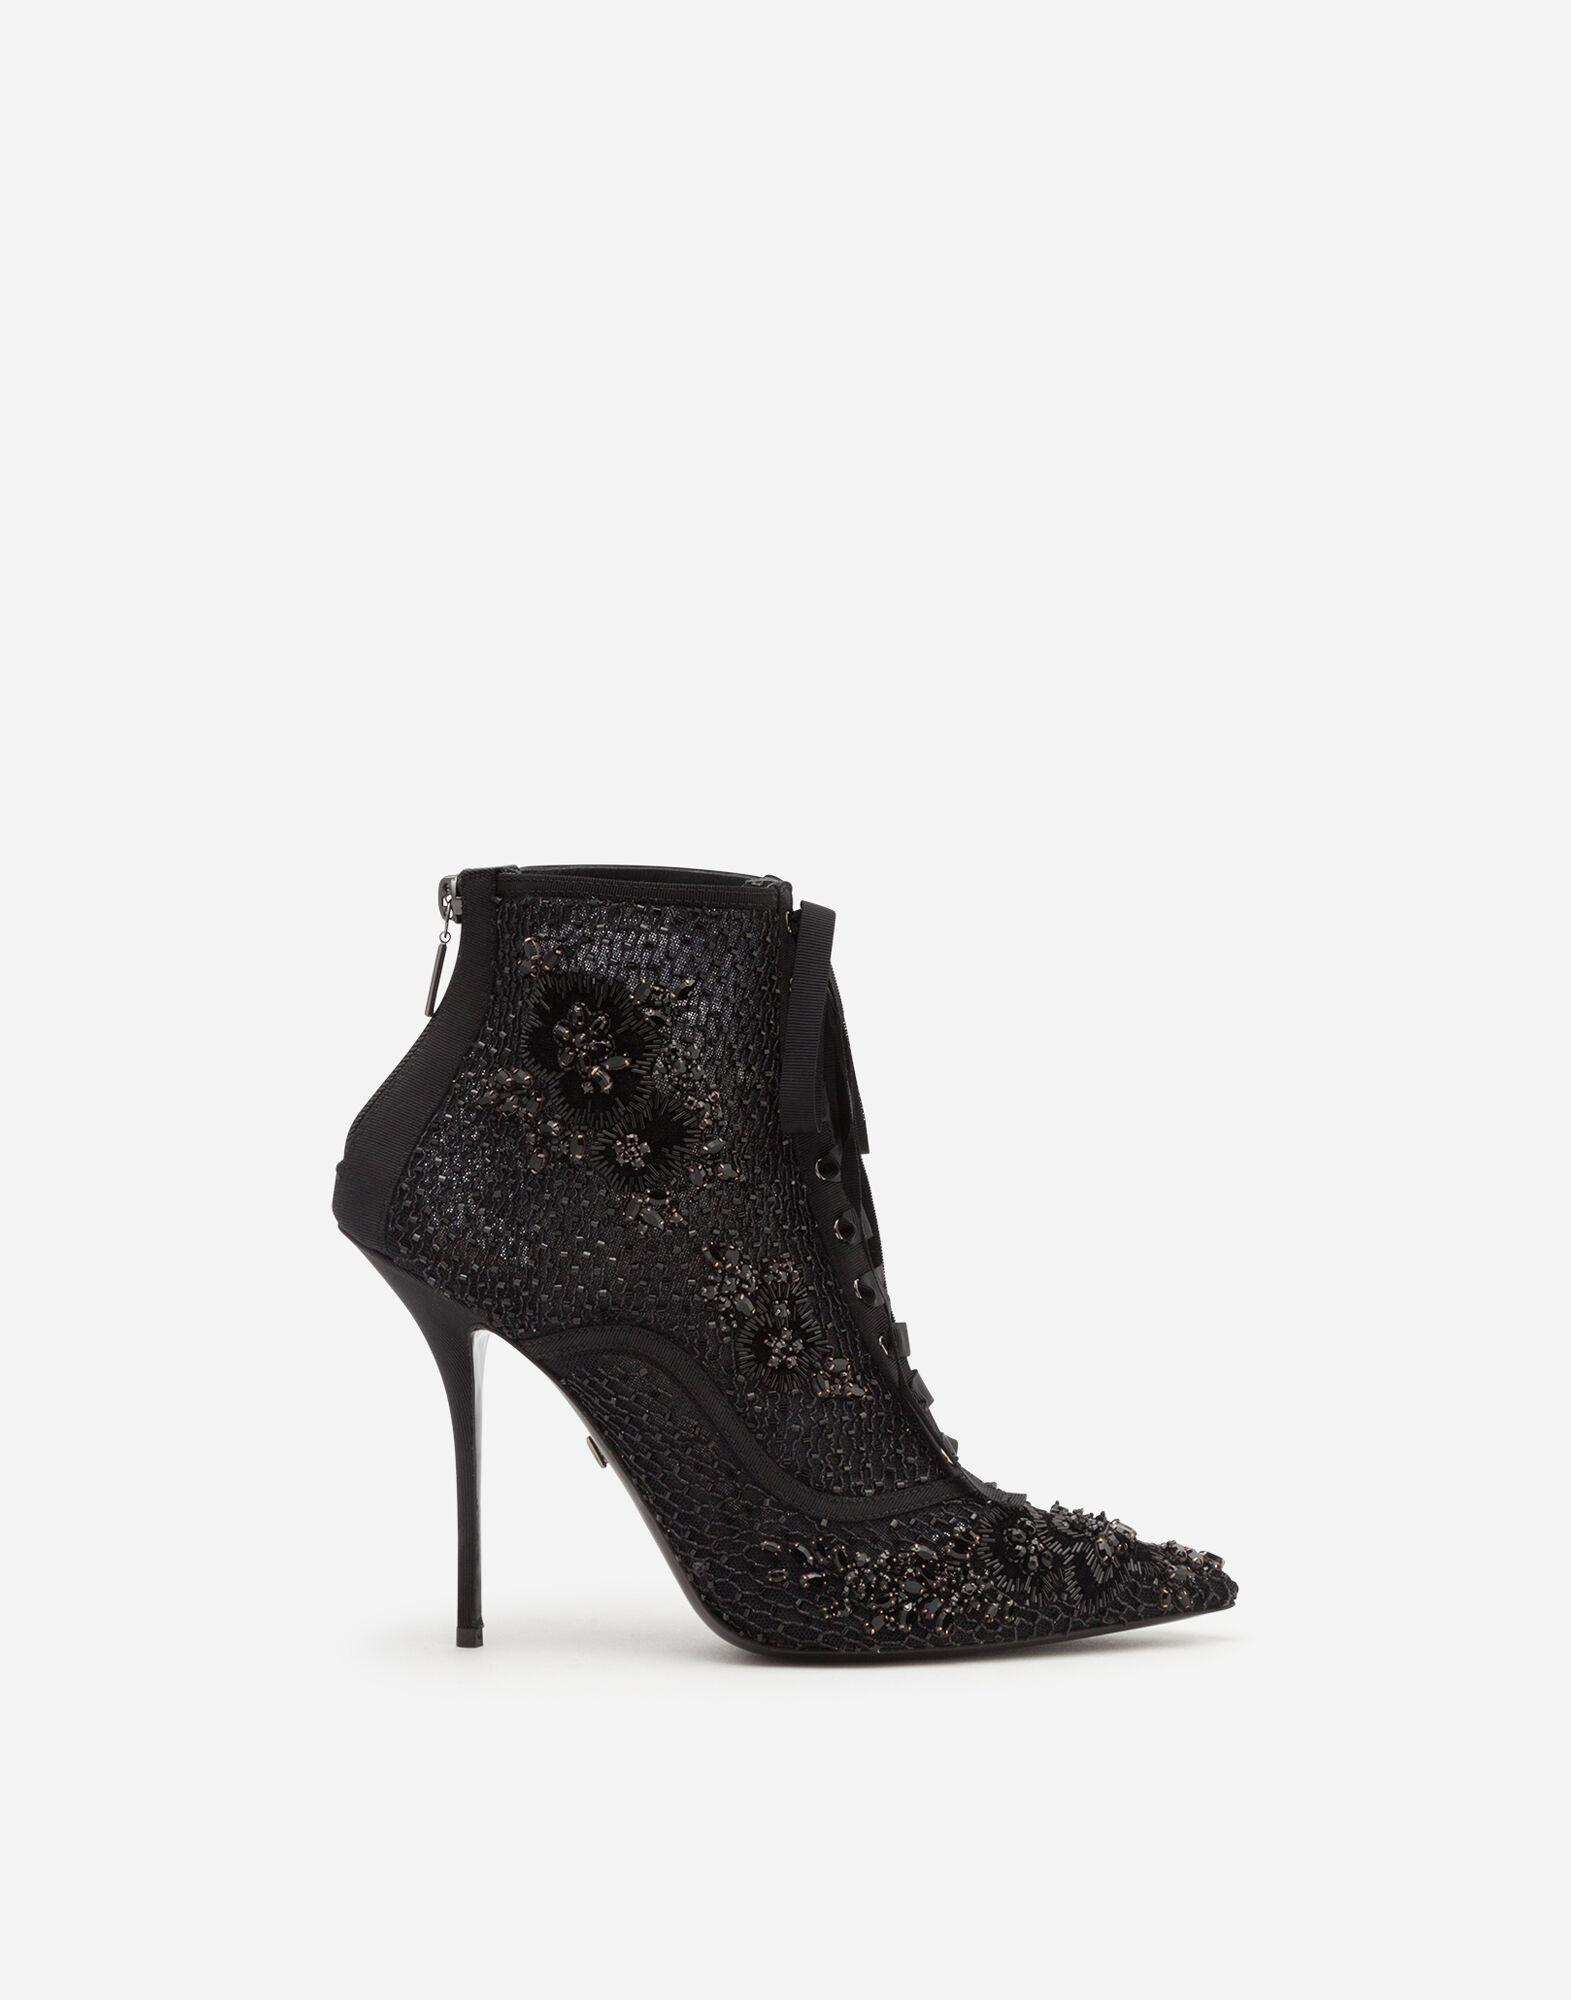 Booties with embroidery, rhinestone and bead embellishment